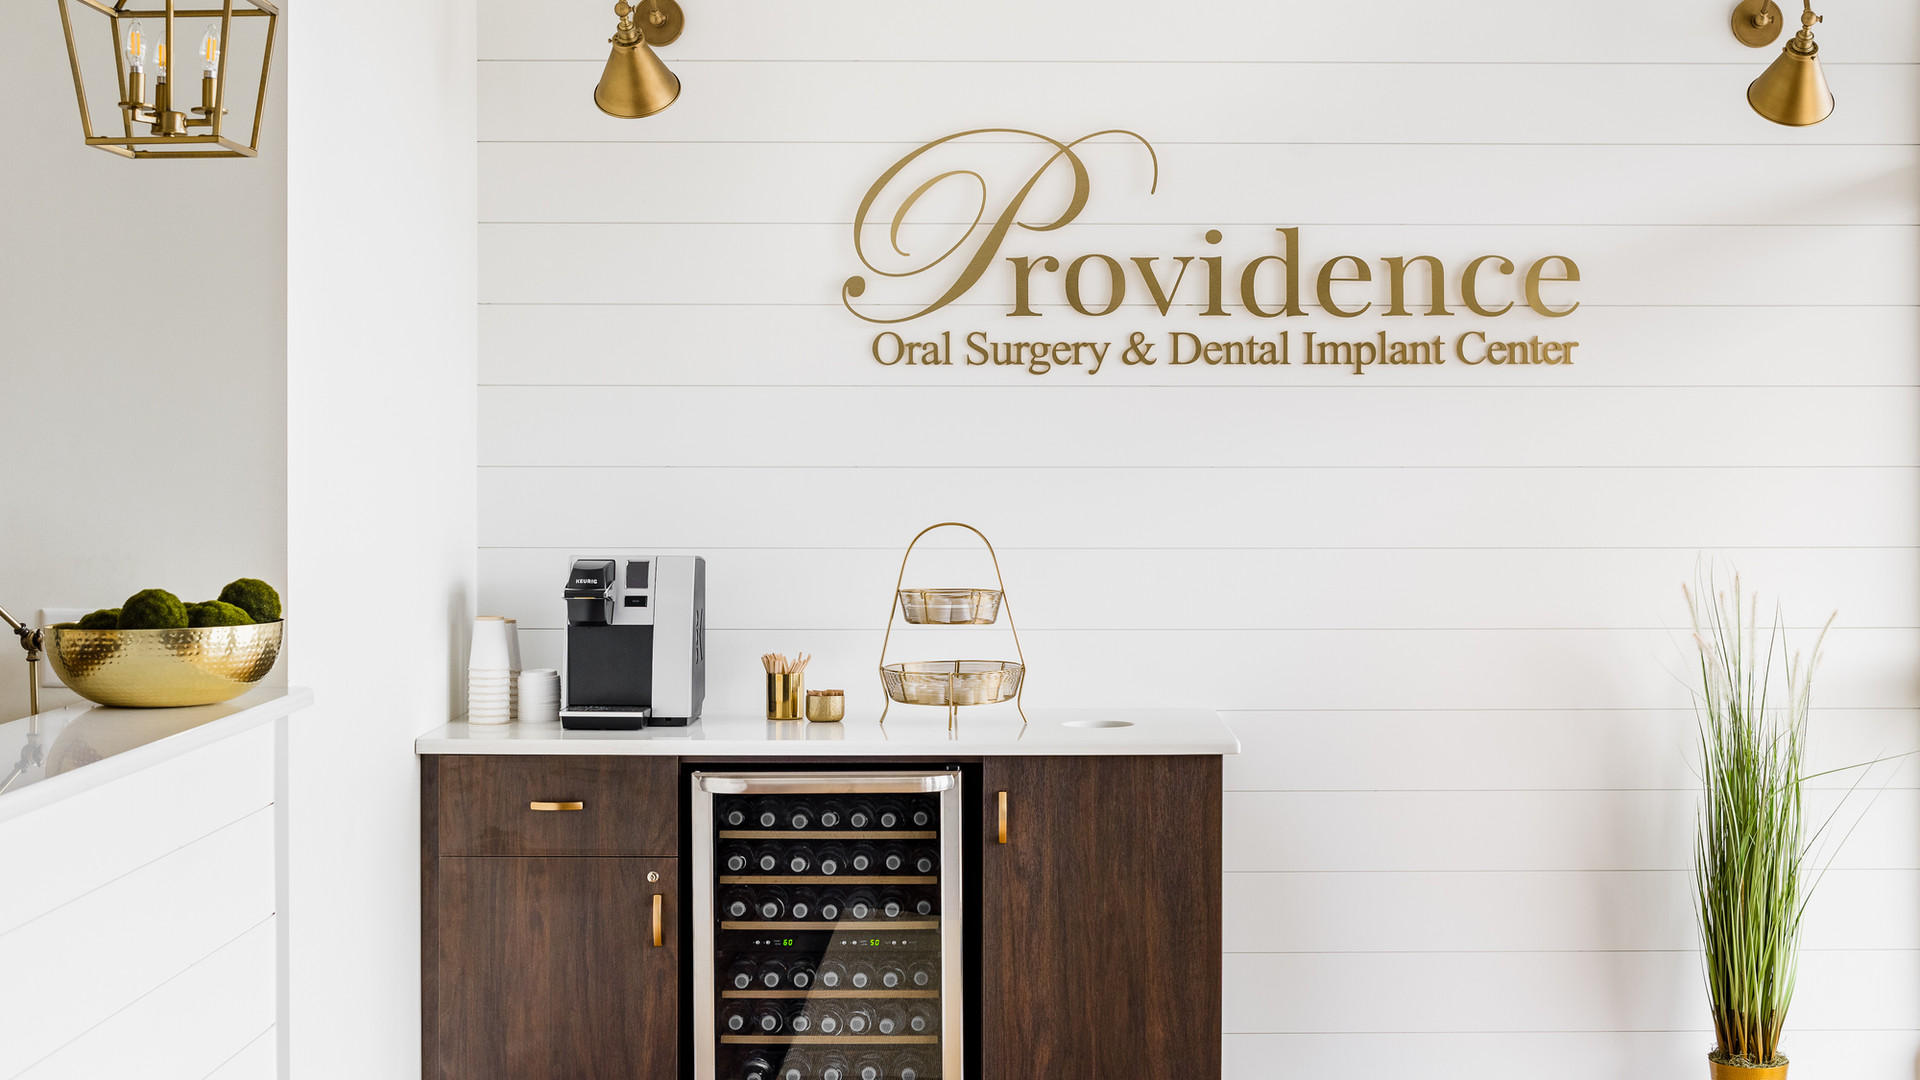 Providence Oral Surgery & Dental Implant Center